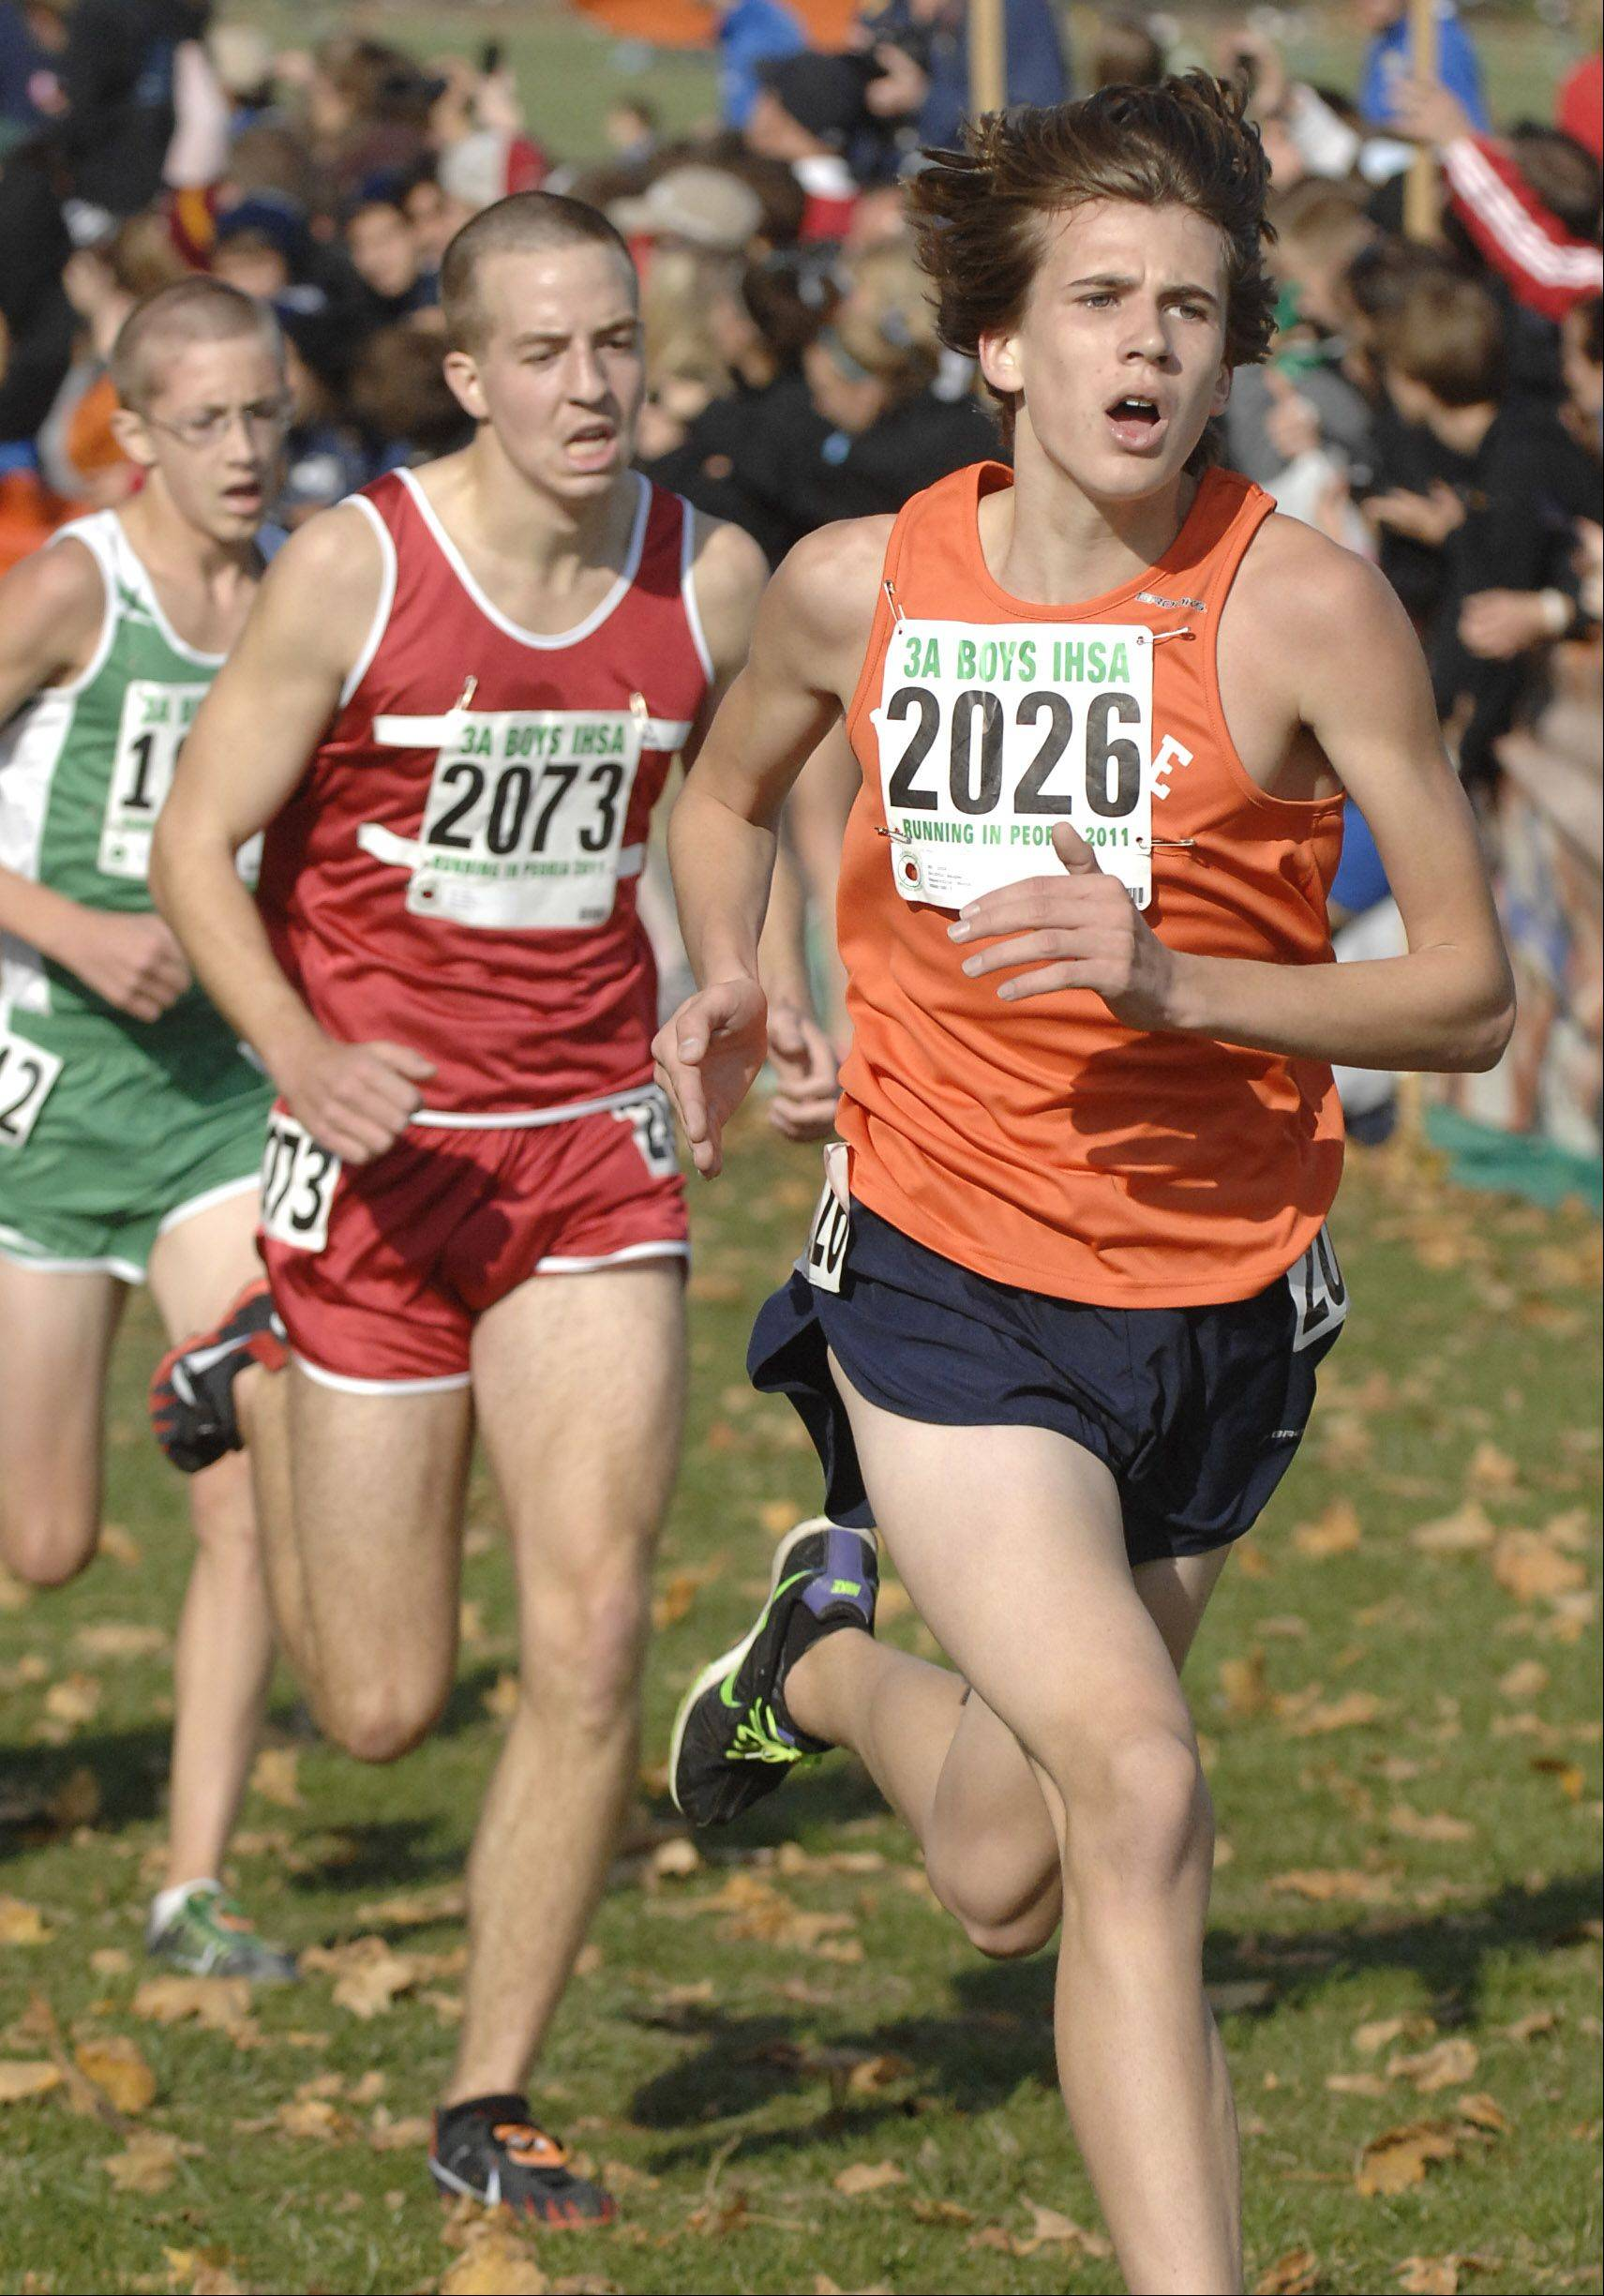 Naperville North's Griffin Haugen comes in 27th place with a time of 15:04 in the 3A state cross country final in Peoria on Saturday, November 5.